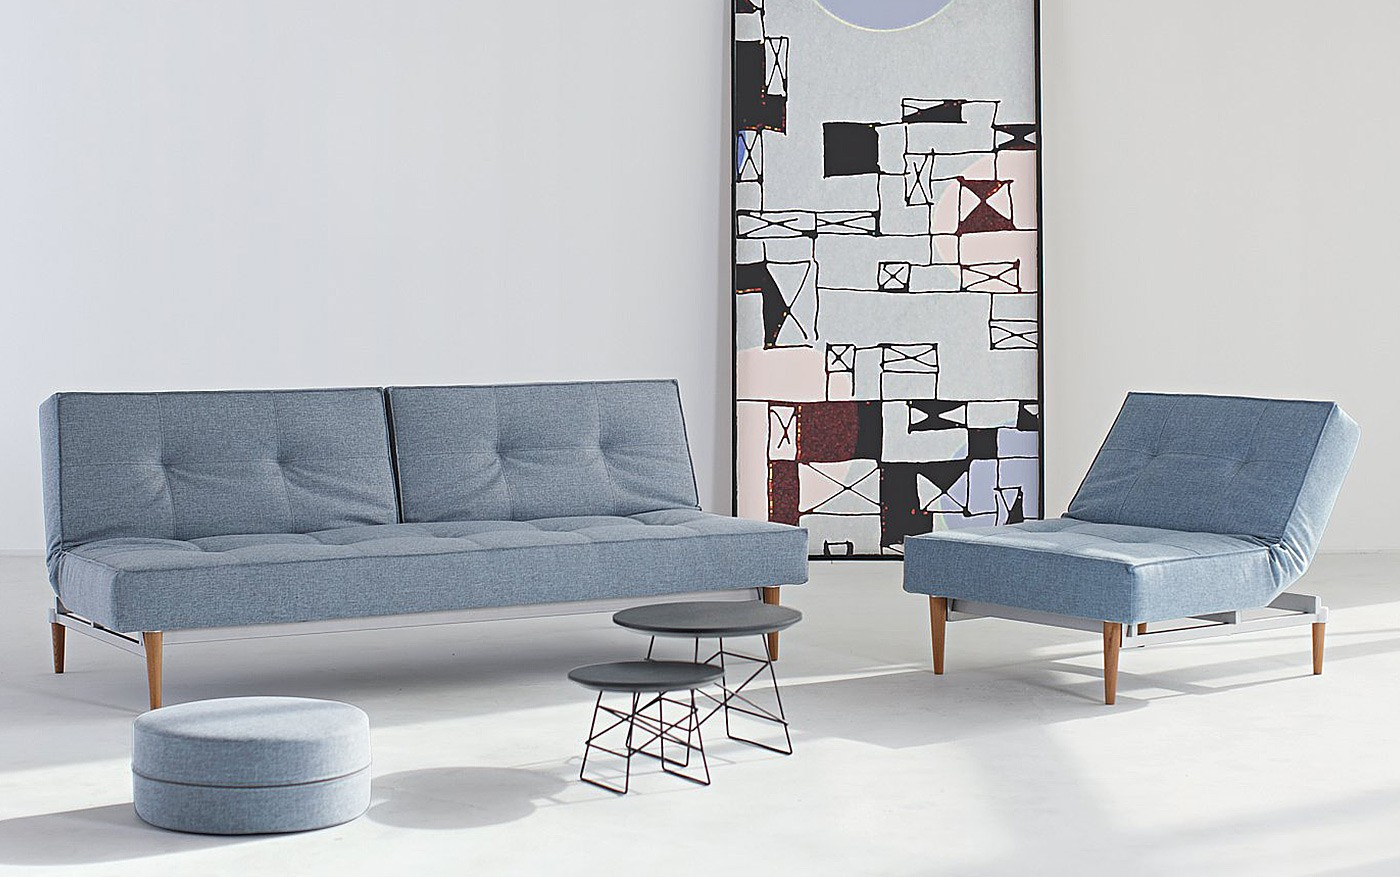 innovation-splitback-sofa-chair-blaugrau-525-showroom